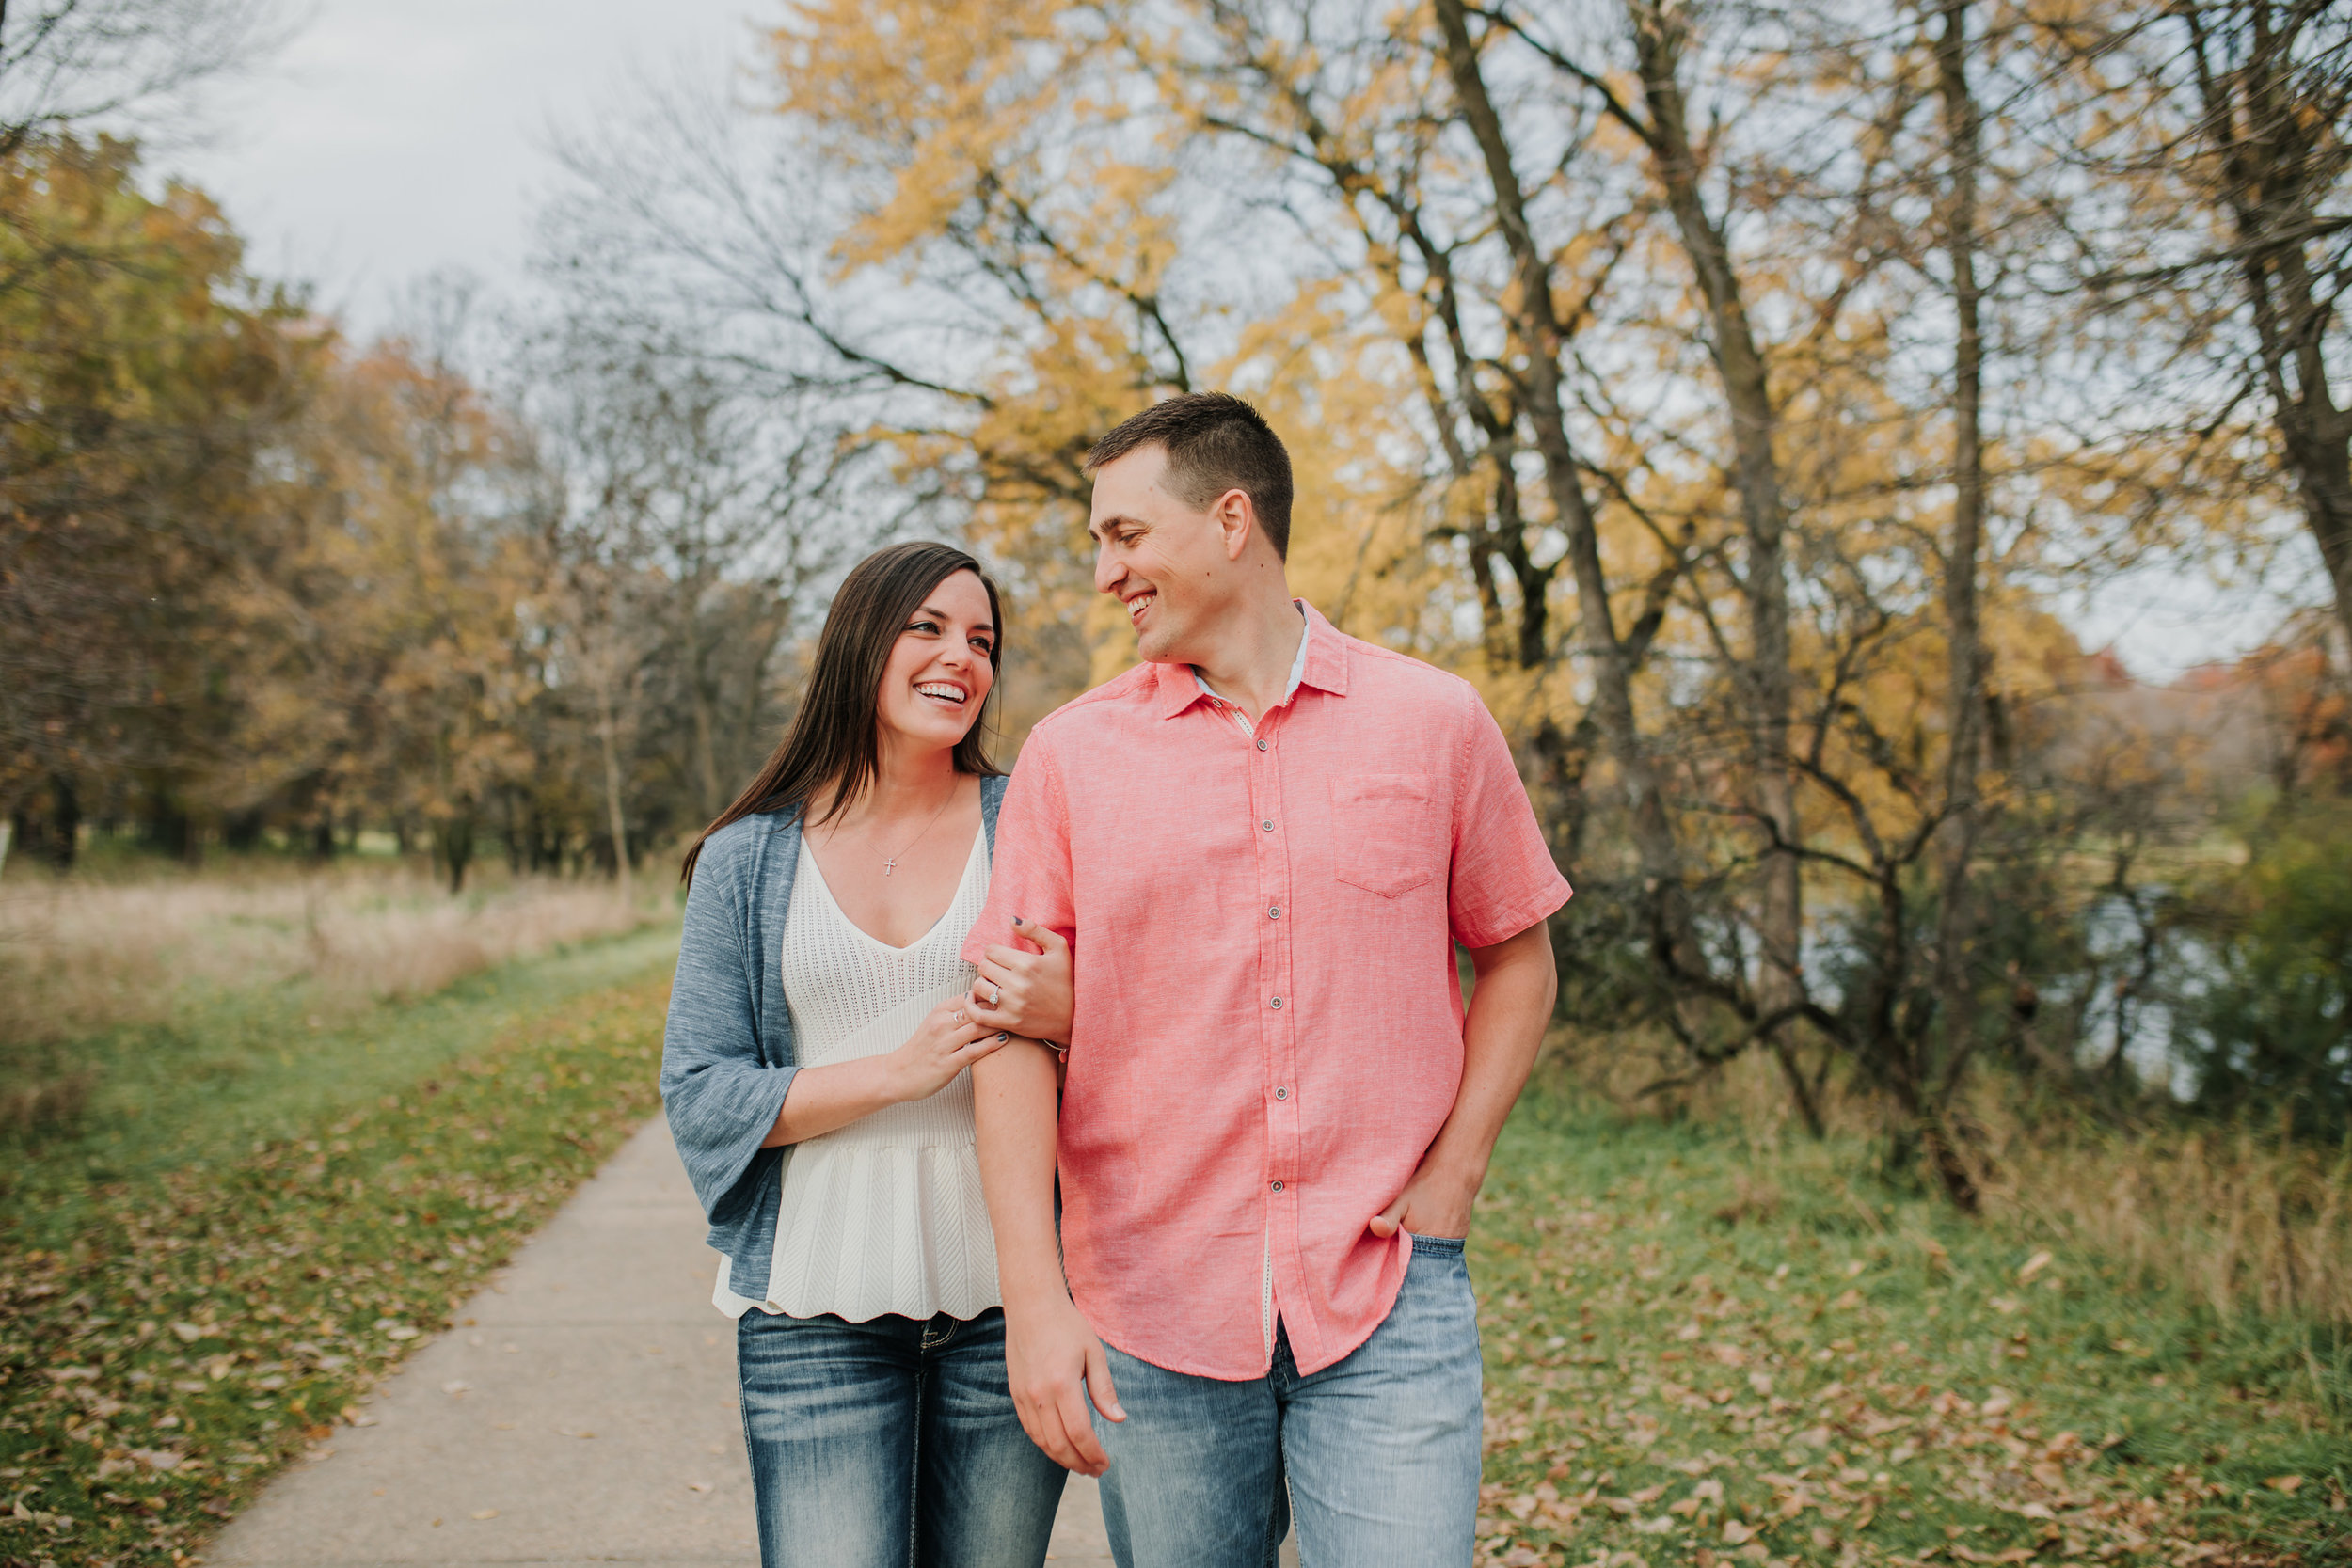 Hannah & Brett - Engaged - Nathaniel Jensen Photography - Omaha Nebraska Wedding Photograper - Omaha Nebraska Engagement Session - Chalco Hills Engagement Session-41.jpg